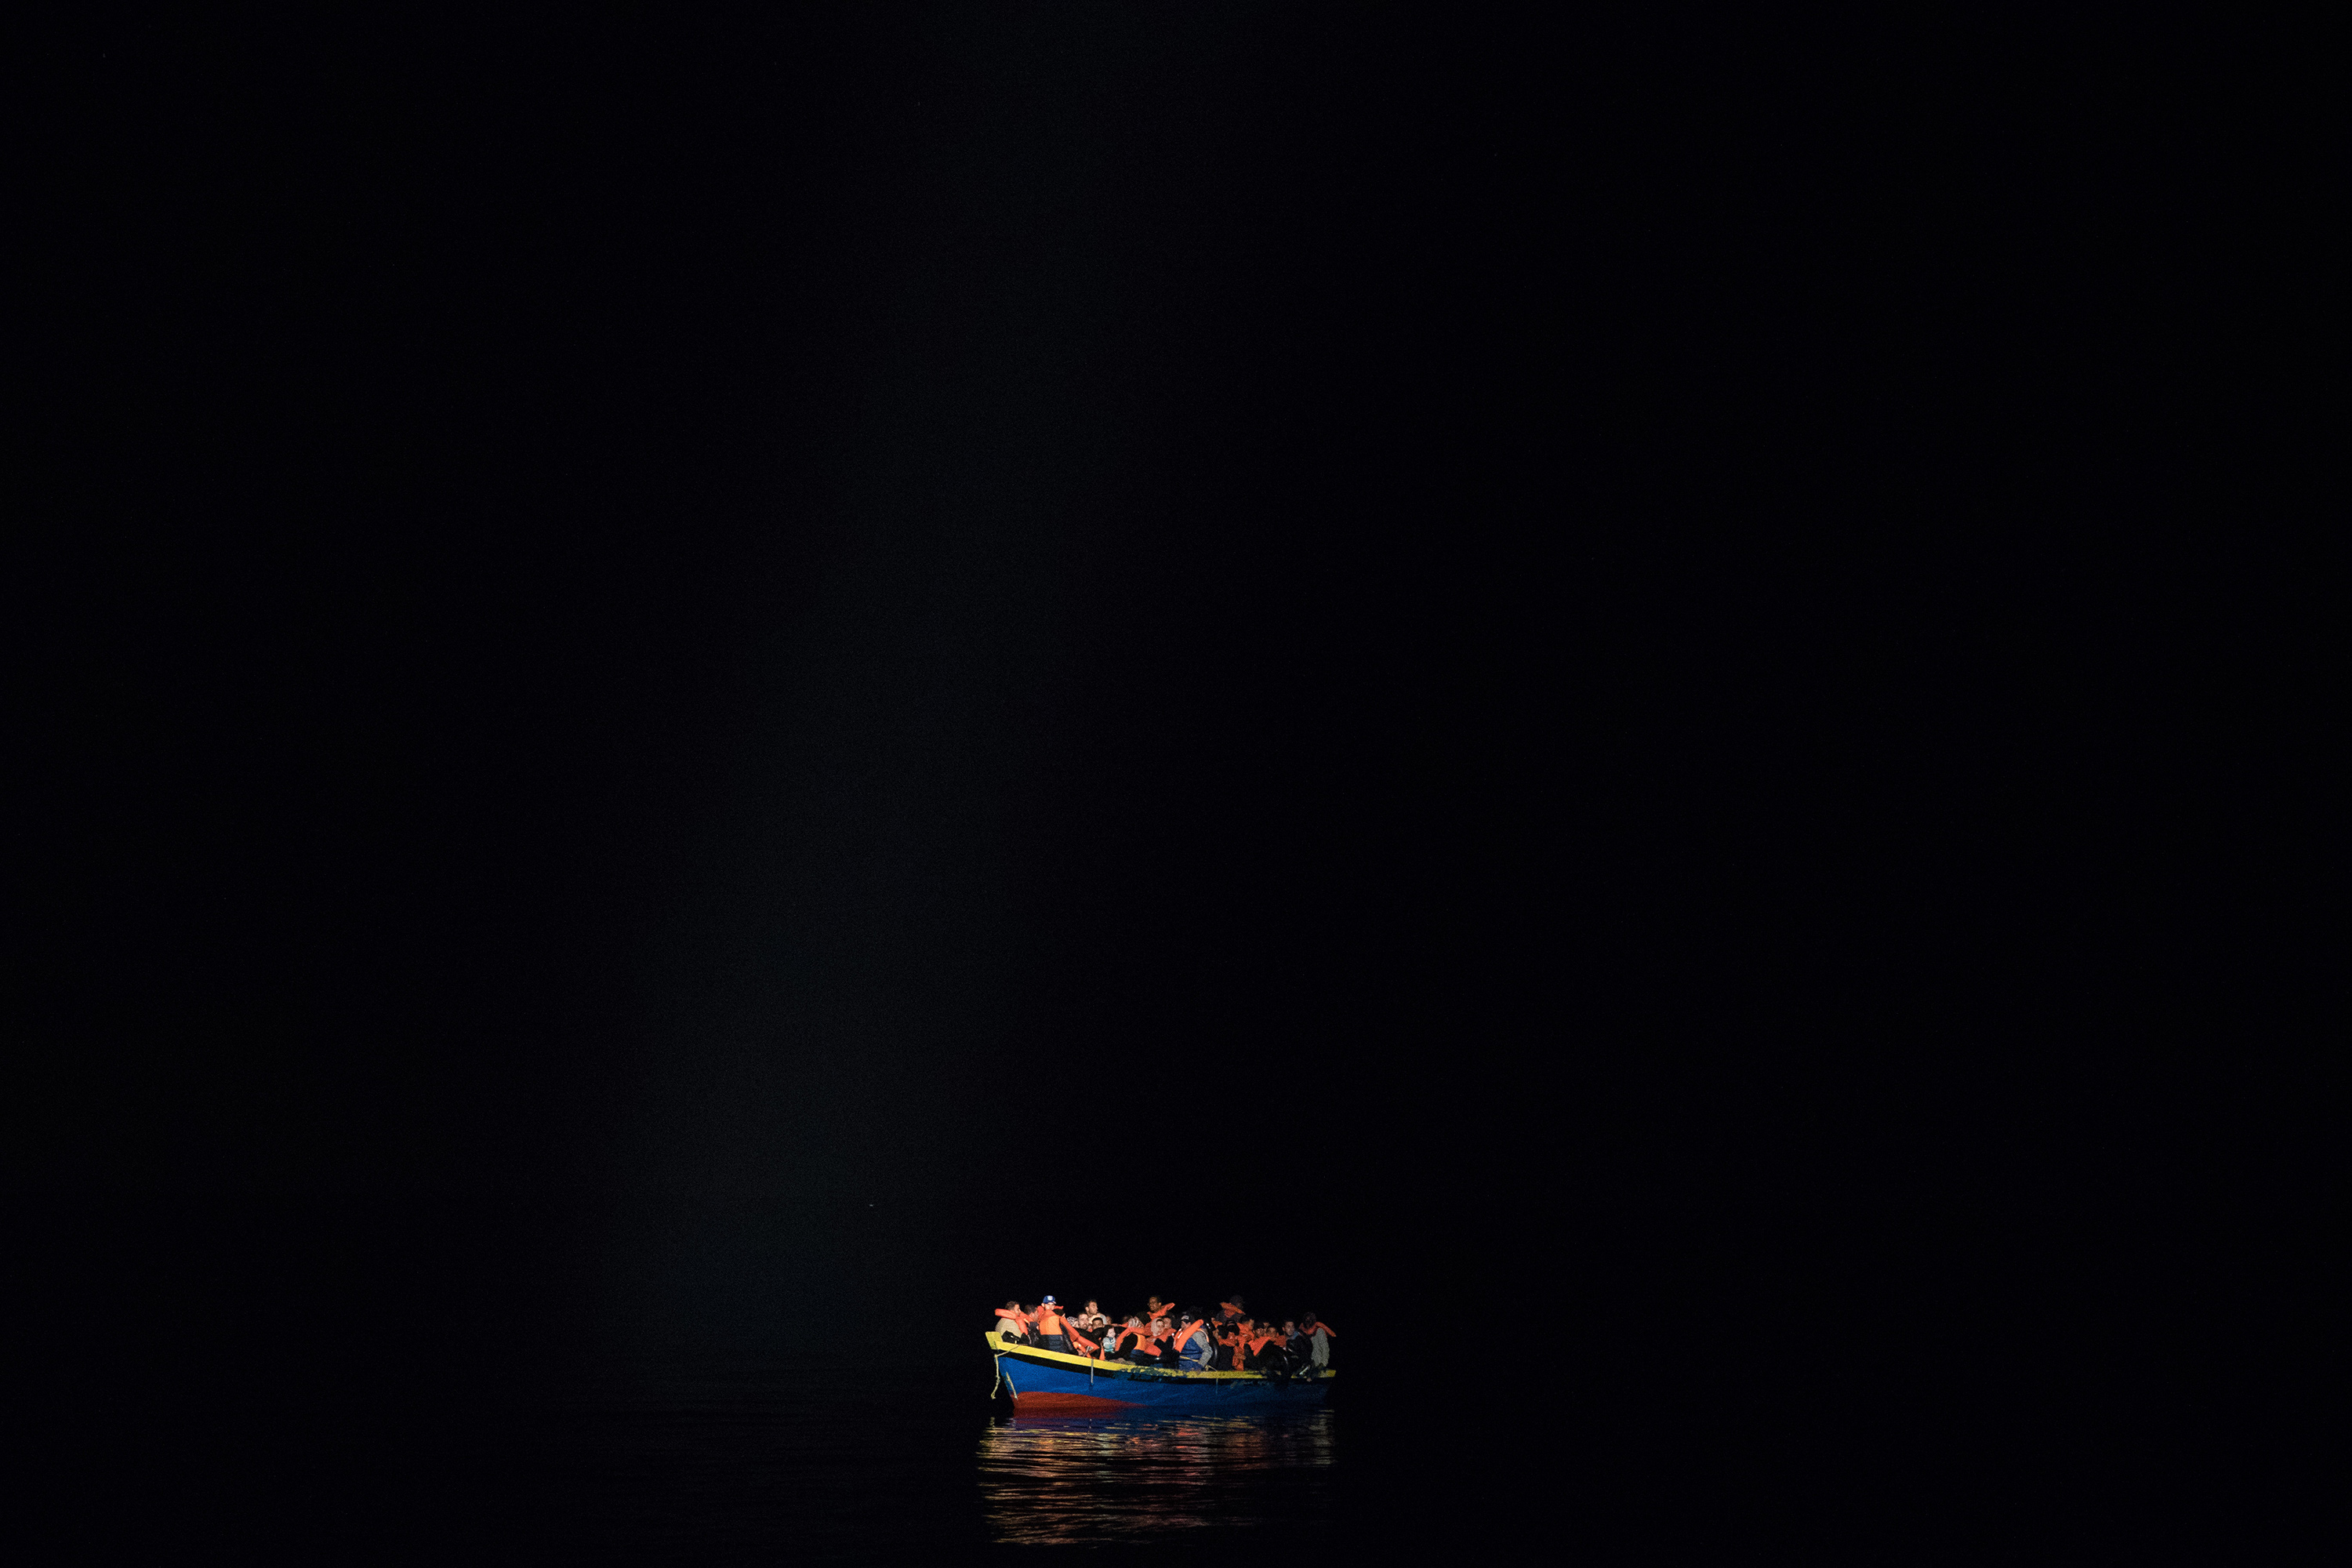 POZZOLLO, ITALY - NOVEMBER 22:  A wooden boat carrying refugees and migrants waits to be escorted to the Topaz Responder as members of MOAS, Migrant Offshore Aid Station make rescues at sea on November 22nd, 2016 in Pozzollo, Italy. The MOAS team worked through the night and into the next morning rescuing 'approximately' 600 people from vessels though that figure could change. MOAS are currently patrolling international waters off the coast of Libya, and running rescue missions for the many migrants and refugees who continue to attempt to make the dangerous crossing across the Mediterranean Sea to Italy. MOAS are a Malta based registered foundation dedicated to providing professional search-and-rescue assistance to refugees and migrants in distress at sea and work alongside with the Red Cross on board the Topaz Responder. The number of deaths this year of people crossing the Mediterranean has risen to almost 4,300. MOAS alone have rescued around 19,000.  (Photo by Dan Kitwood/Getty Images)